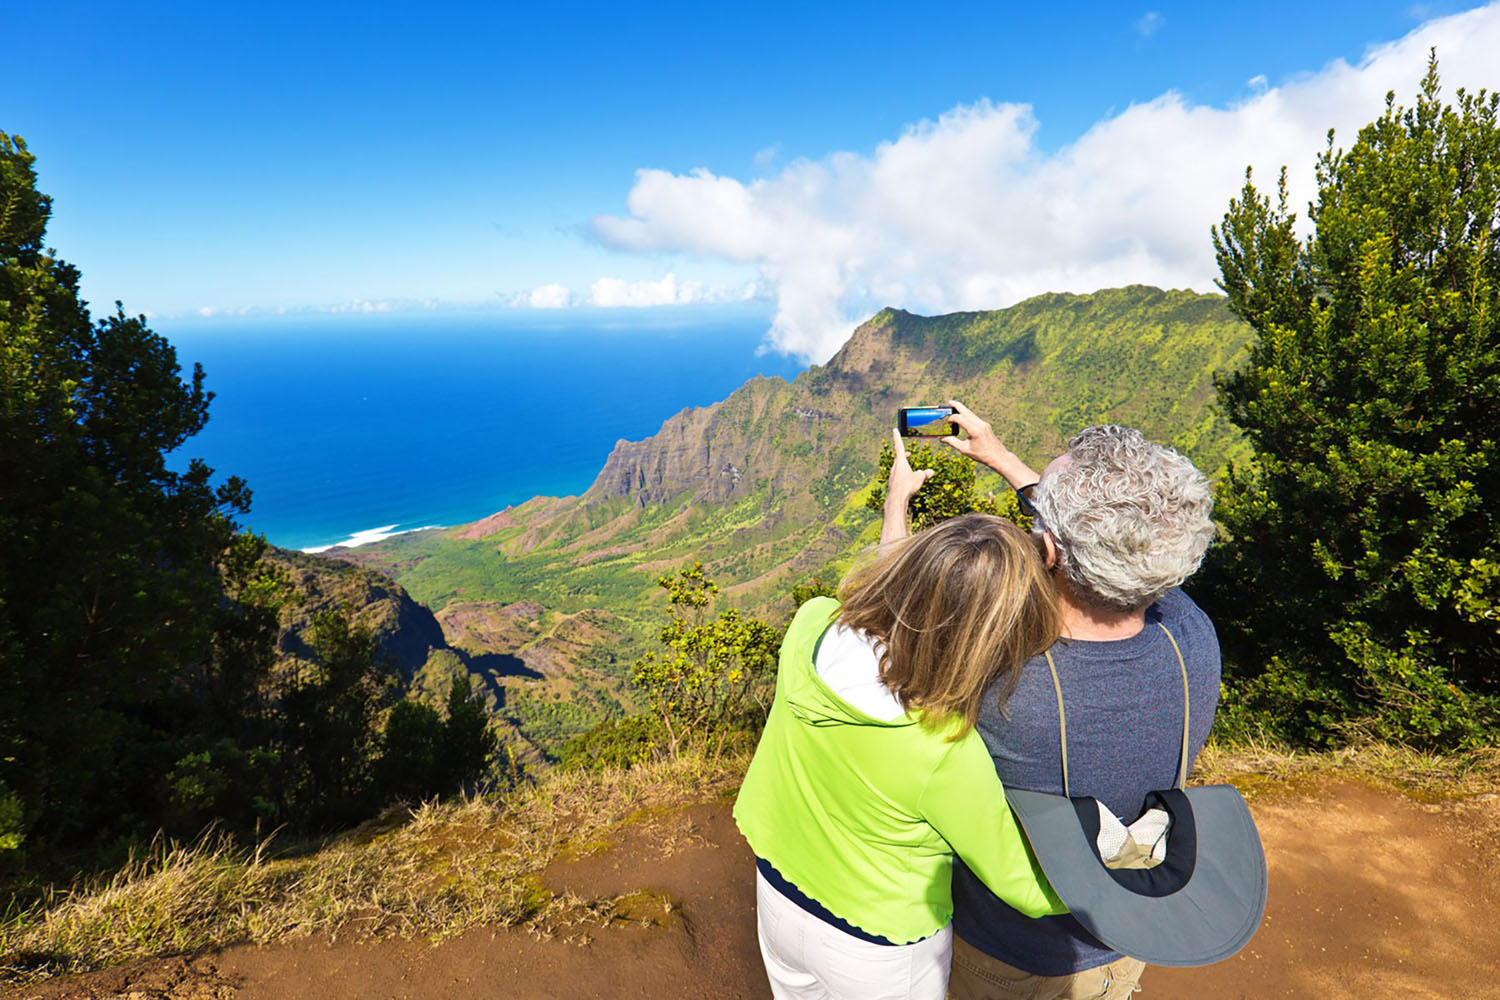 A man and woman take a photo on a hill overlooking the ocean in Hawaii